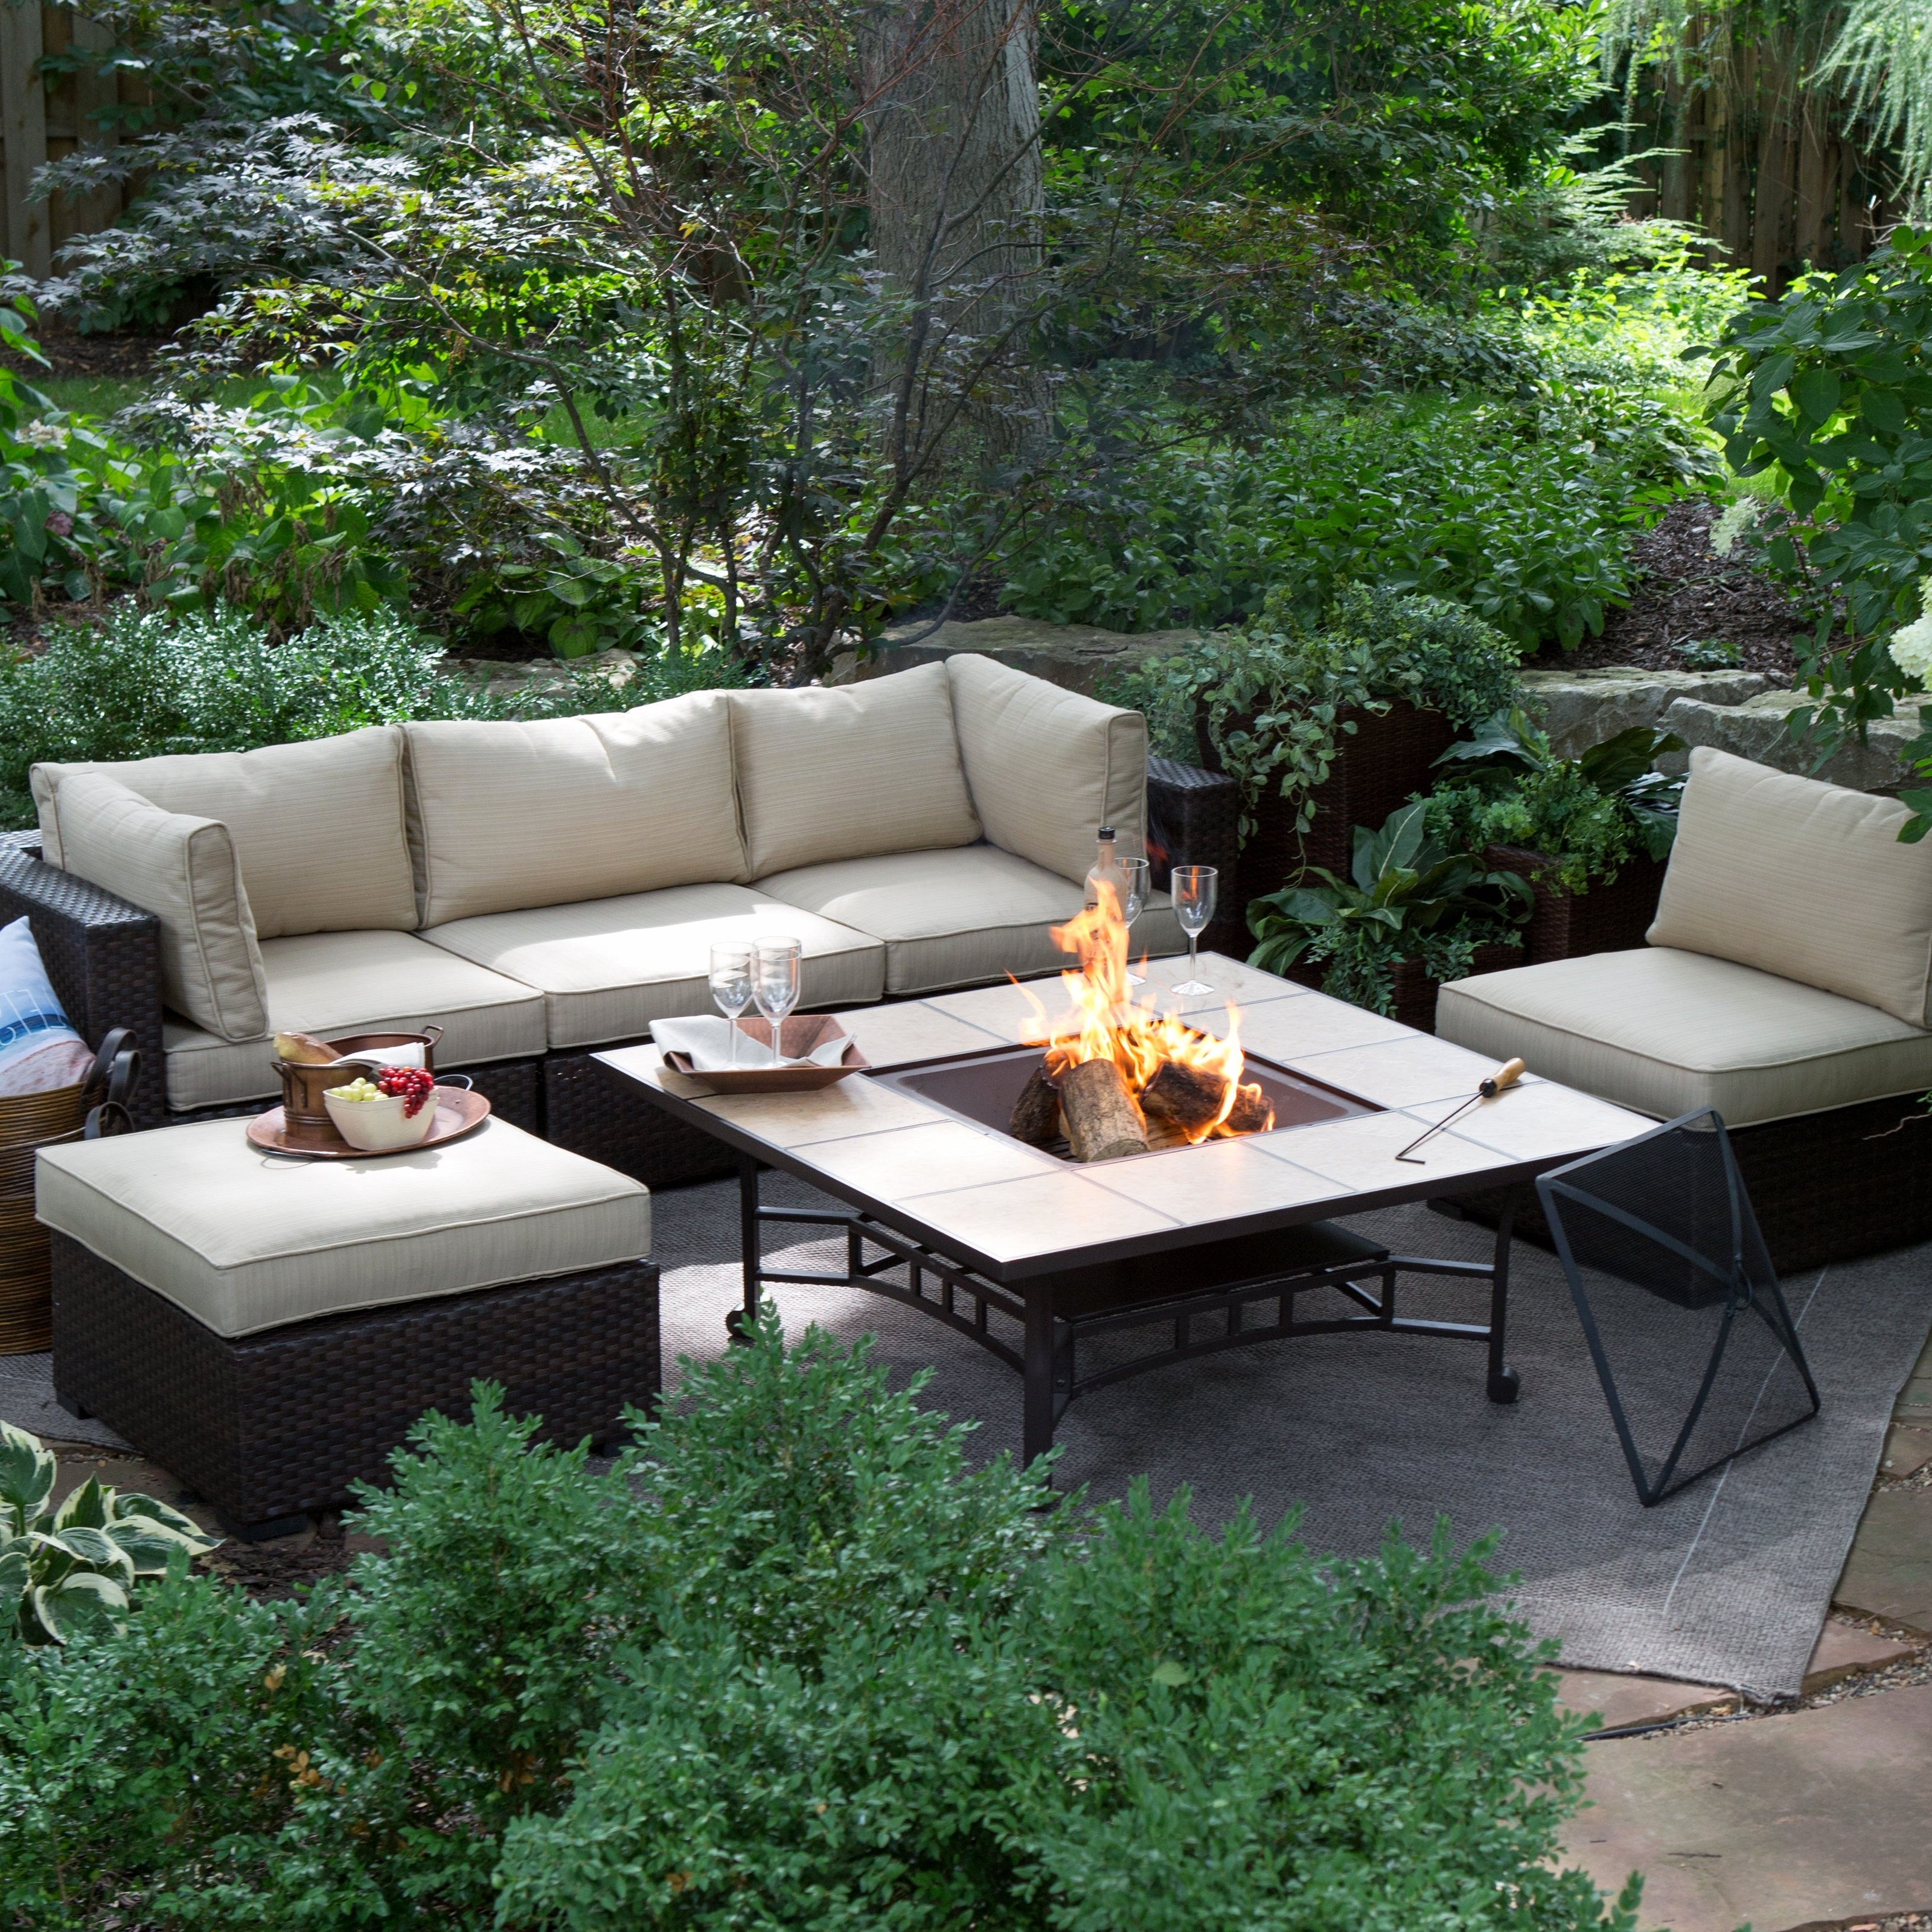 Patio Conversation Sets With Fire Pit Table Inside Current Fire Pits (View 10 of 20)